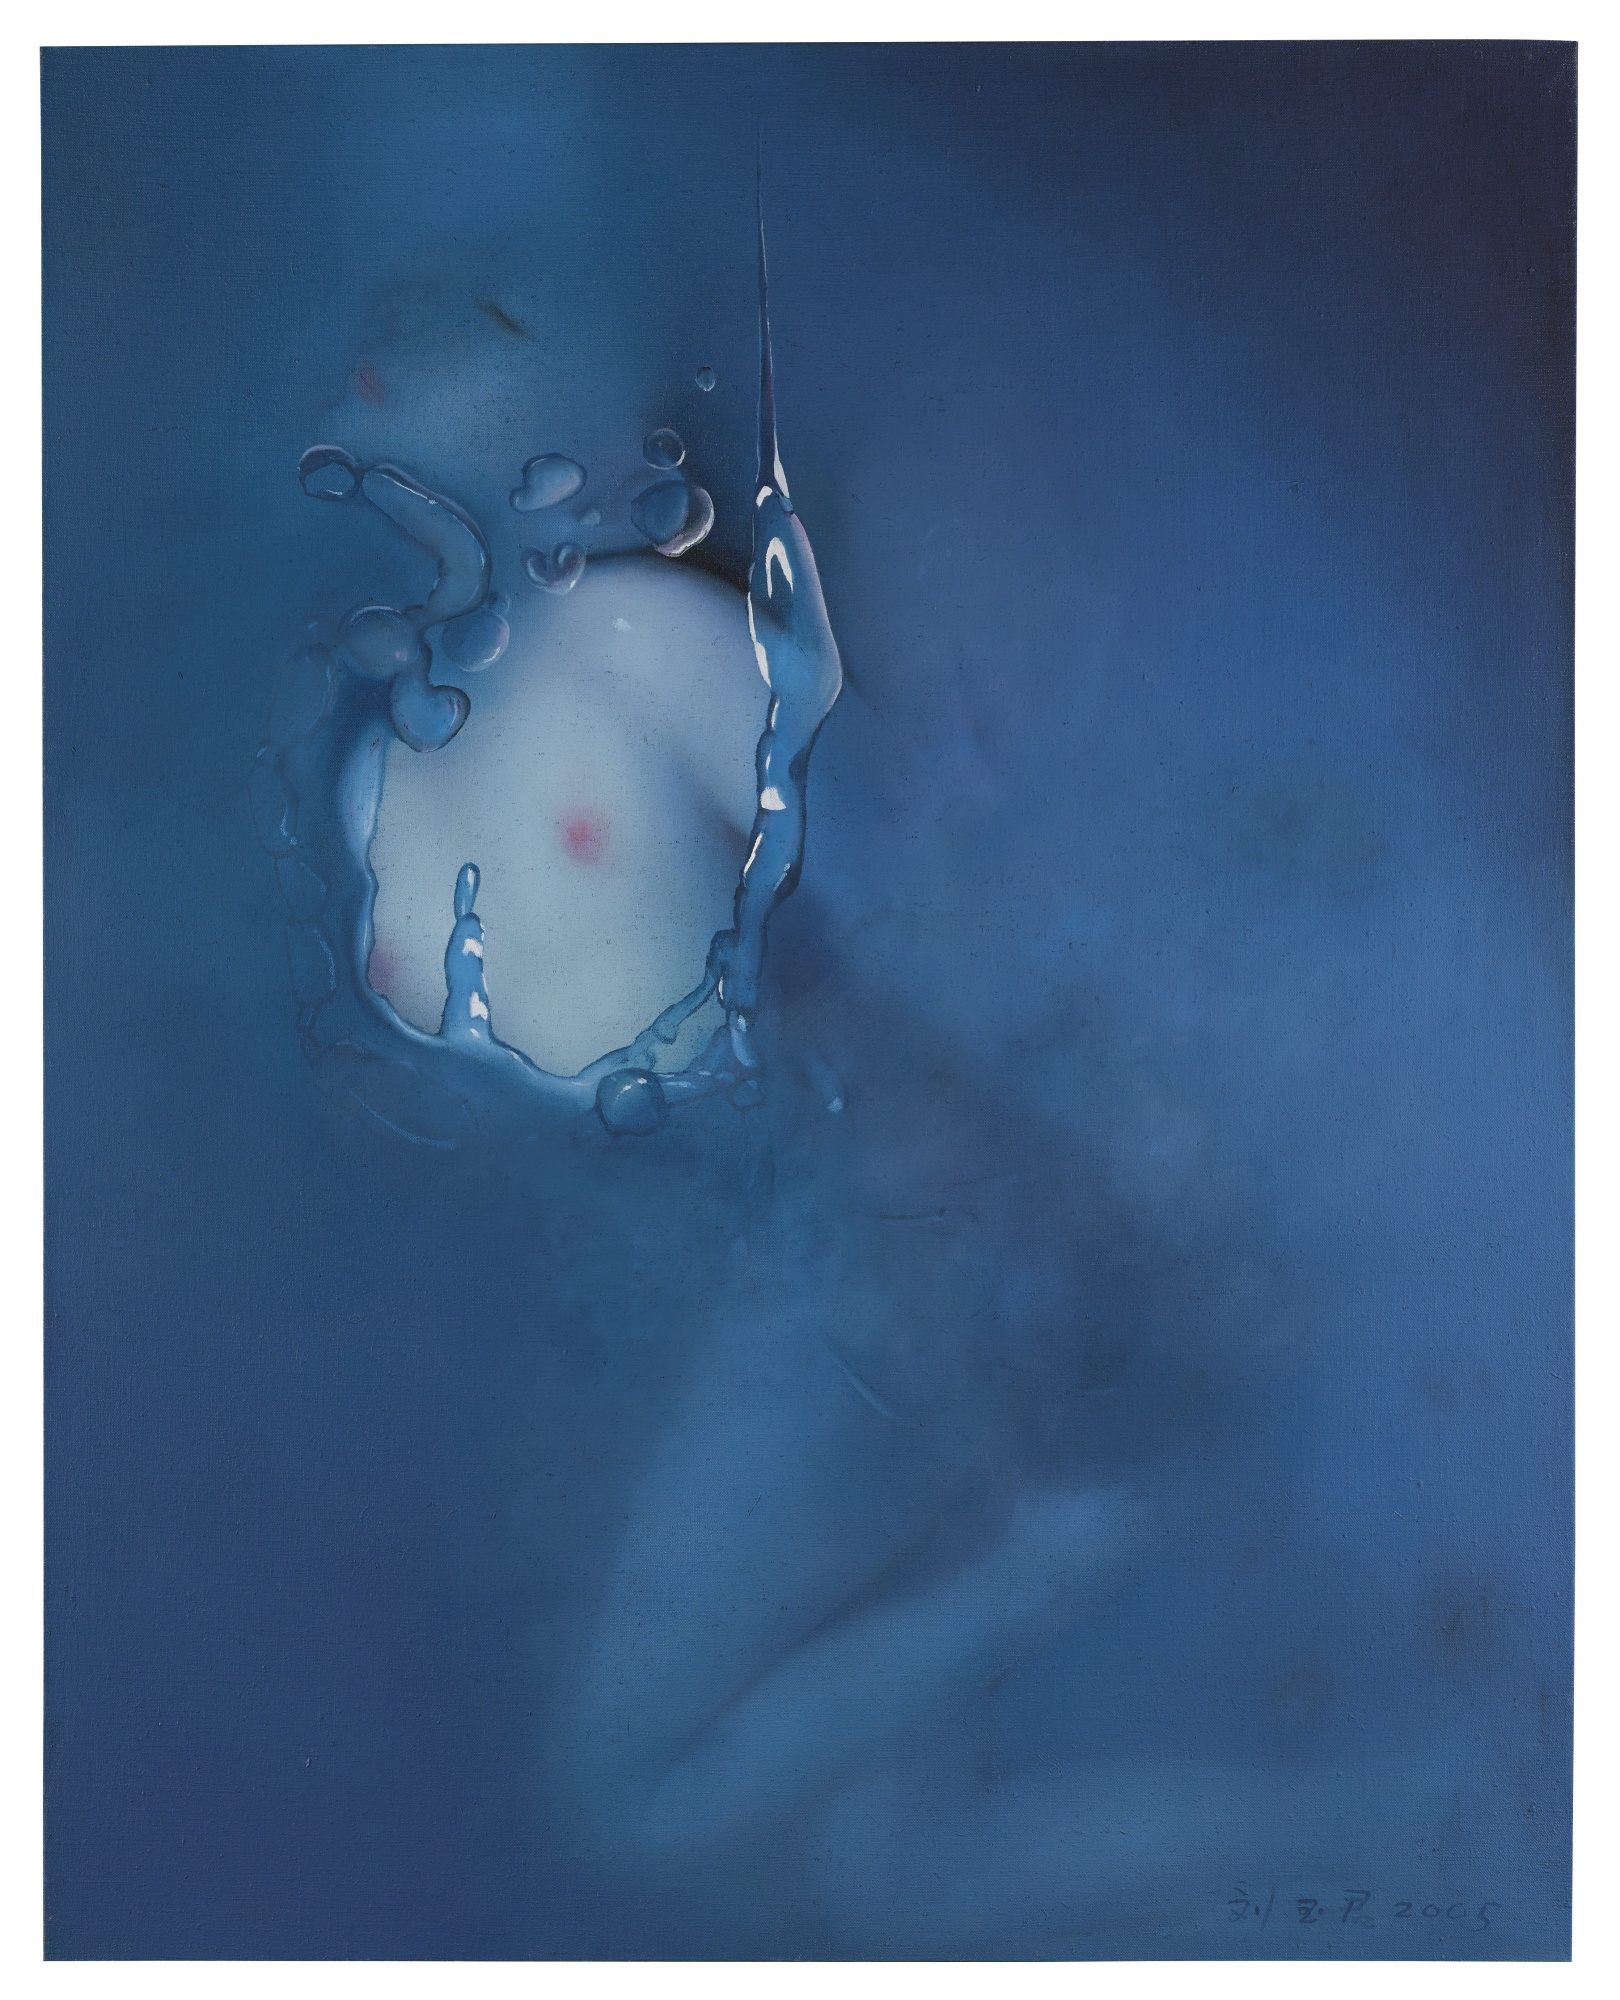 Liu Yujun-Unknown Liquid-2005